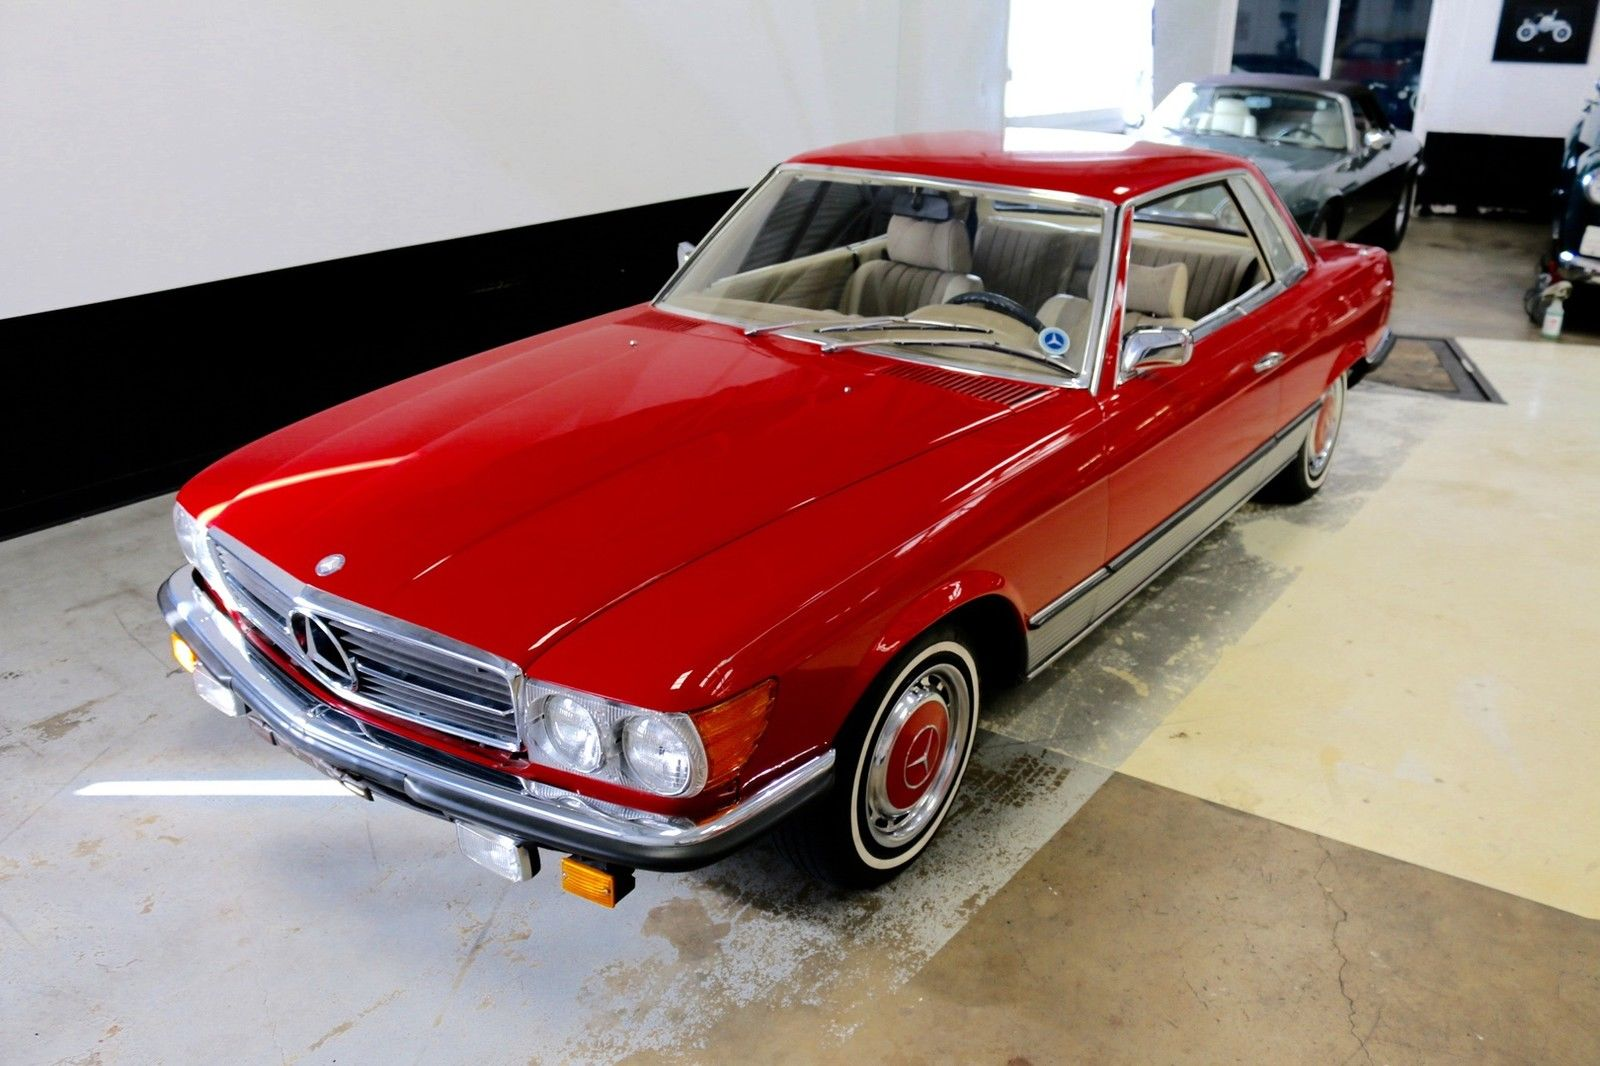 Dealer Markup On Used Cars Daily Turismo: Do You See One Oh Seven? 1975 Mercedes-Benz 280SLC